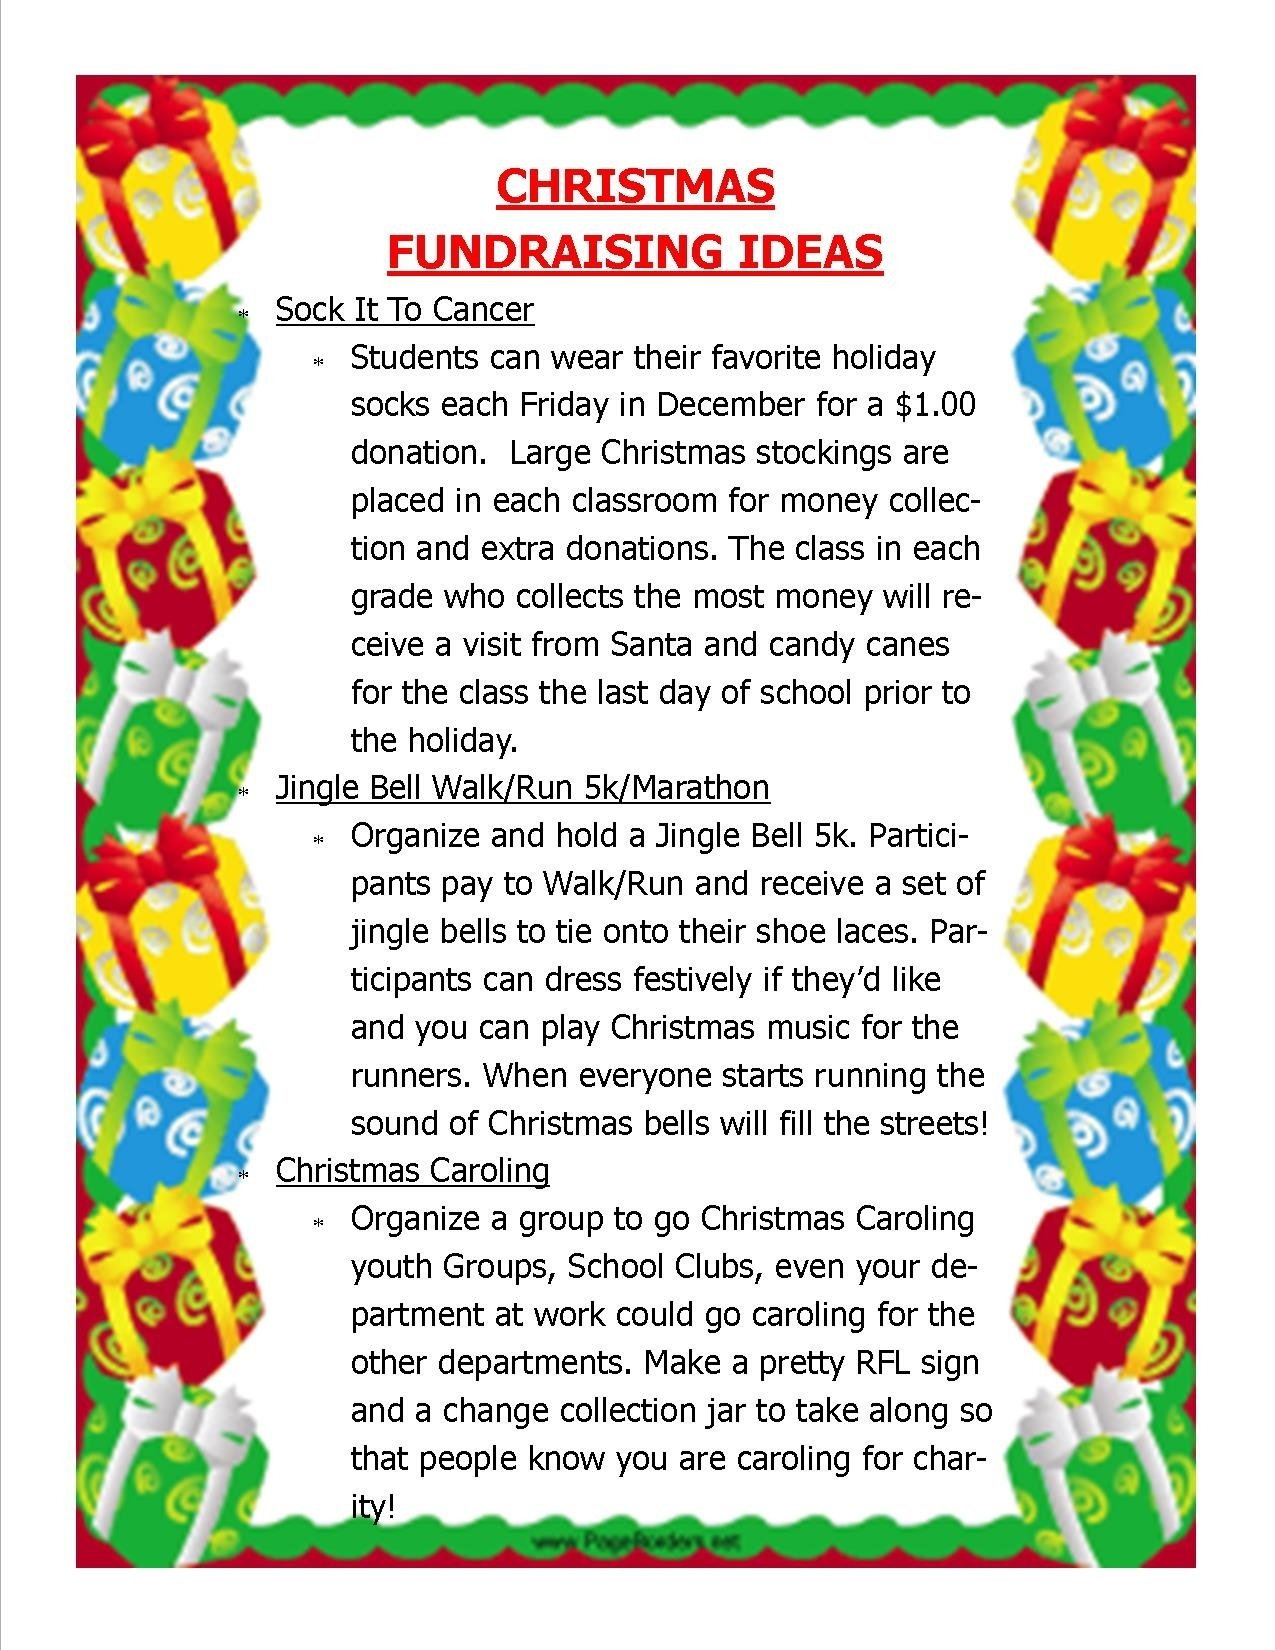 10 Famous Fundraising Ideas For School Clubs relay for life christmas fundraising ideas ccfa take steps 1 2020